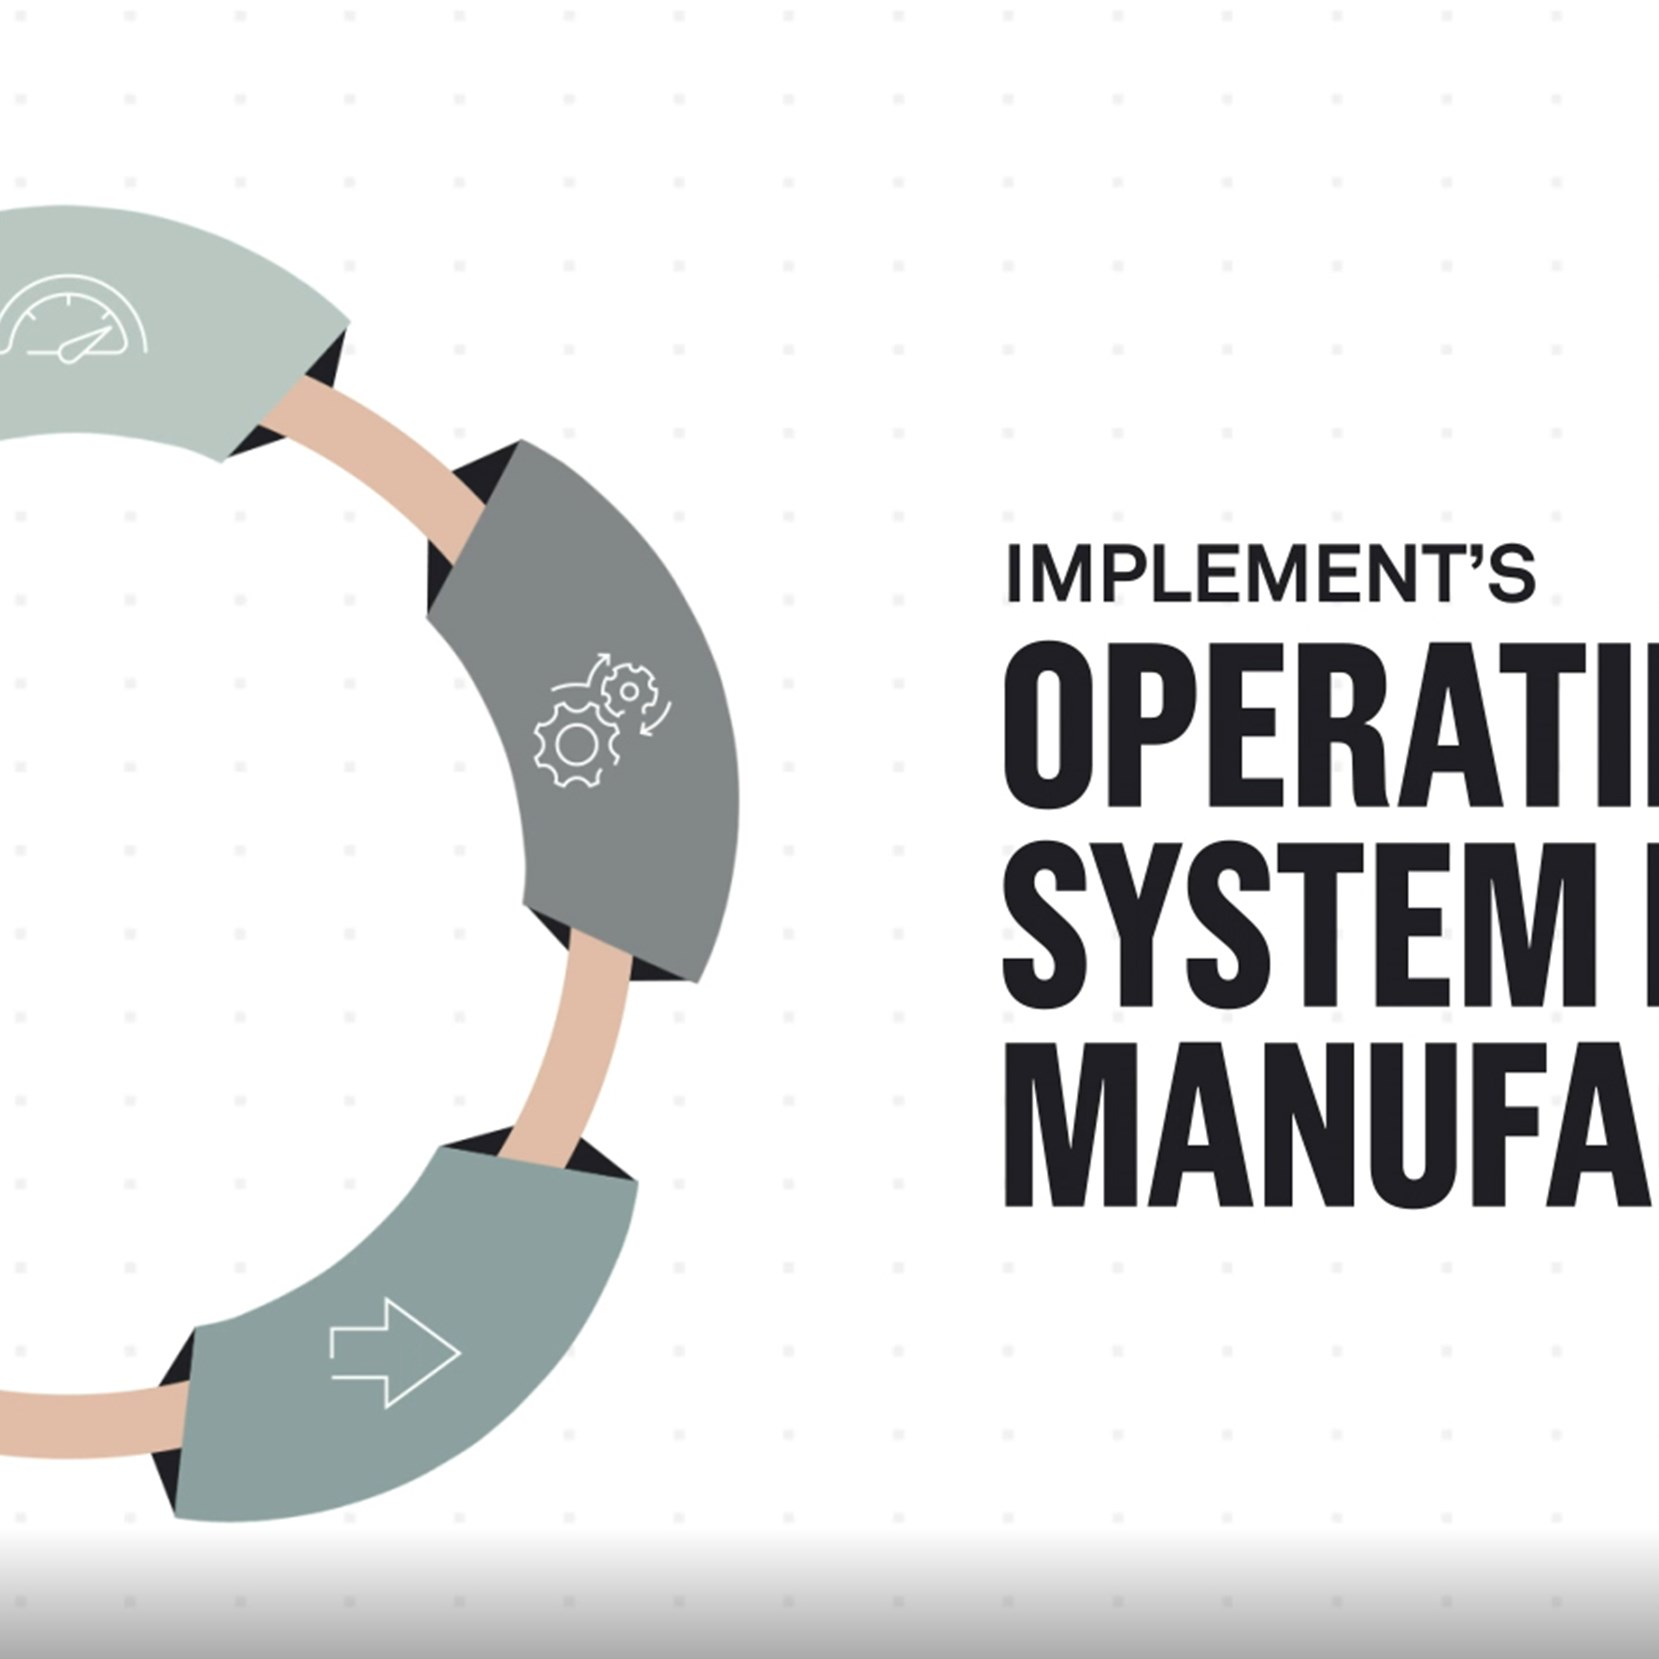 Operating system for manufacturing